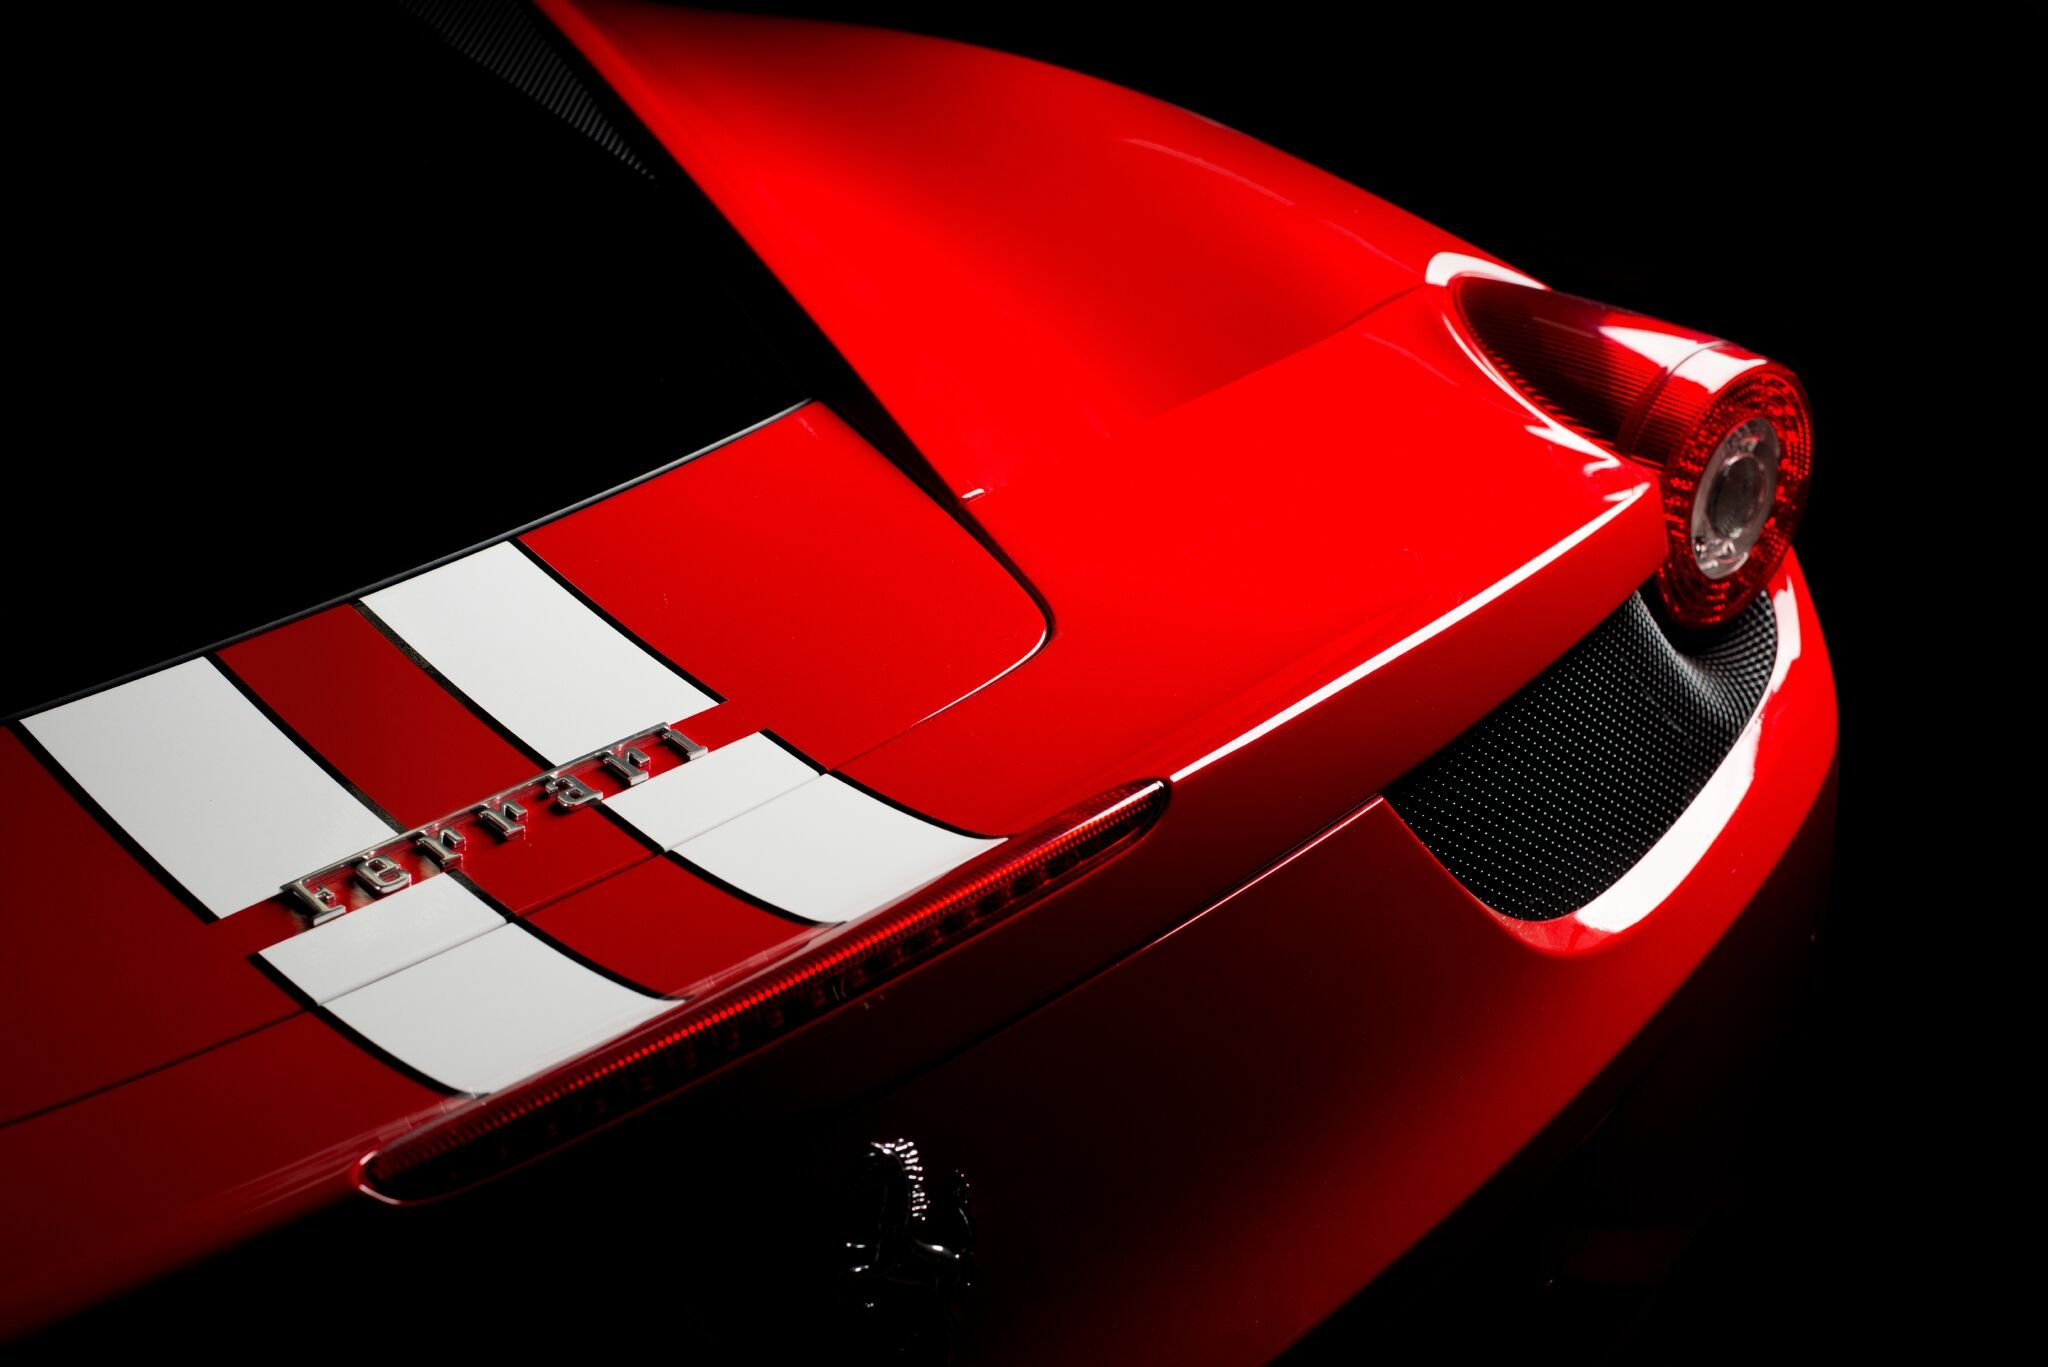 Ferrari 458 rear shot by Epic Images on their recent trip to the Winguard Studio.